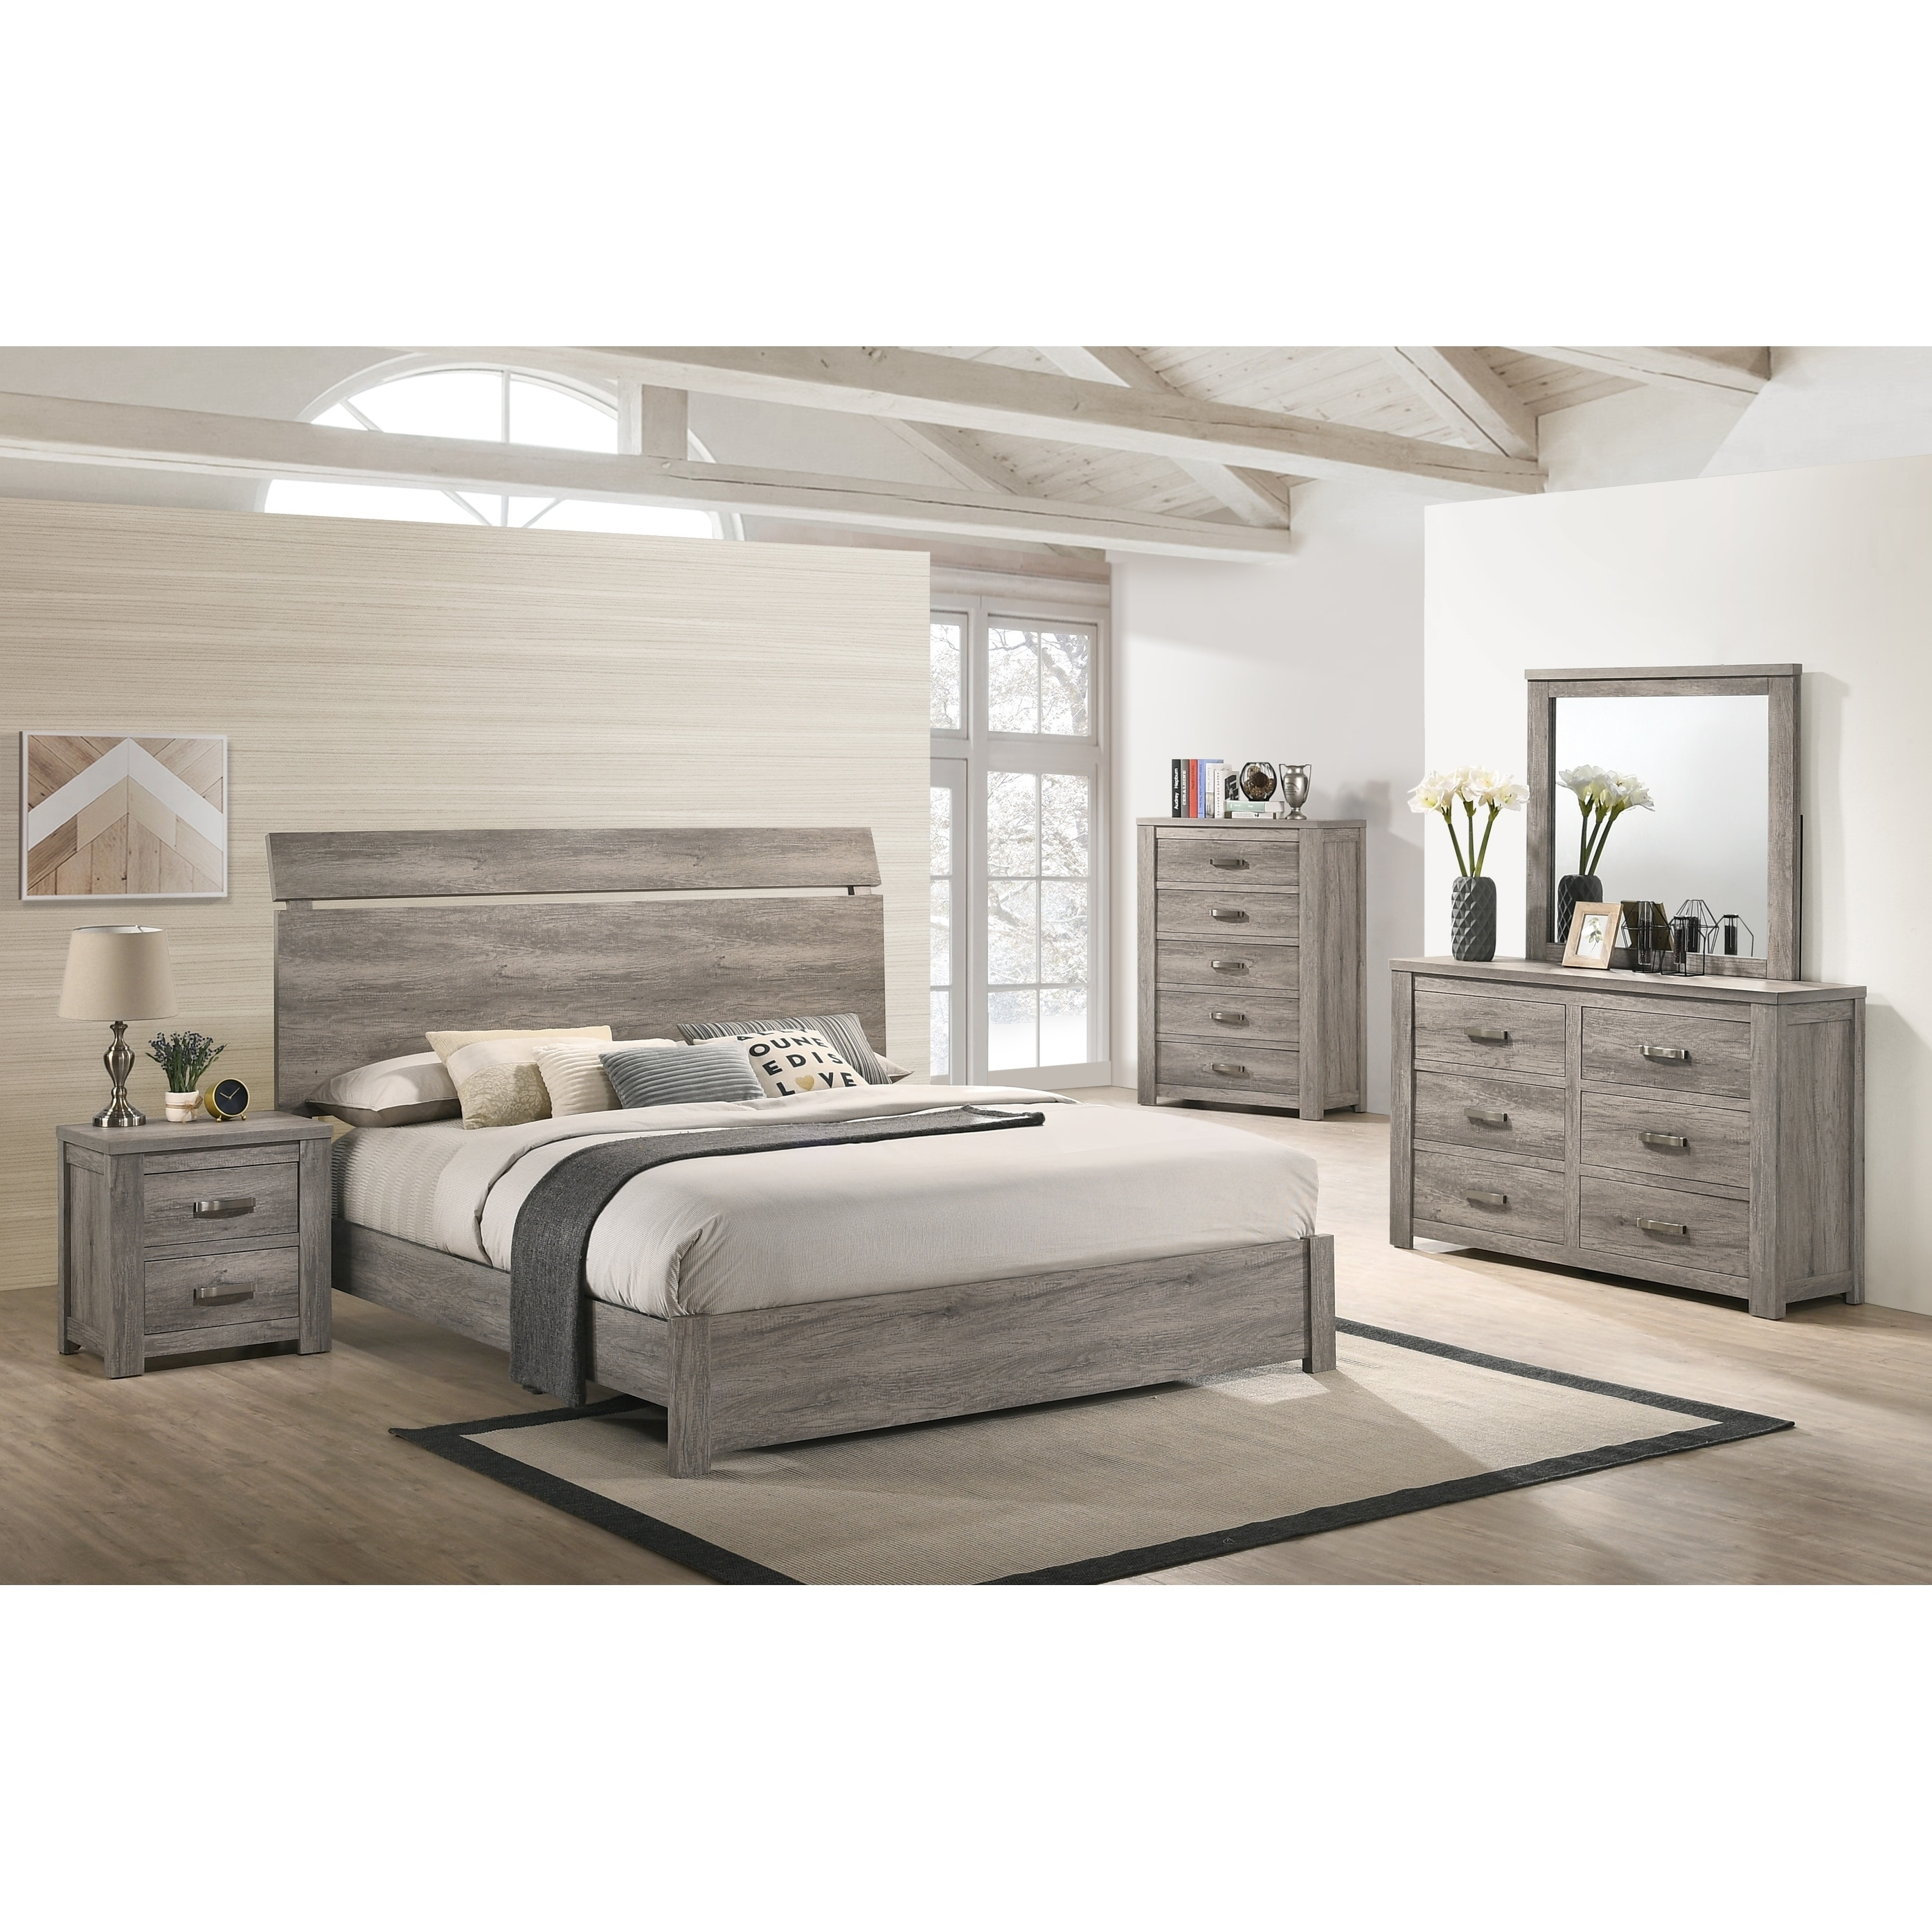 Floren Contemporary Weathered Gray Wood Bedroom Set, Panel Bed, Dresser,  Mirror, Nightstand, Chest